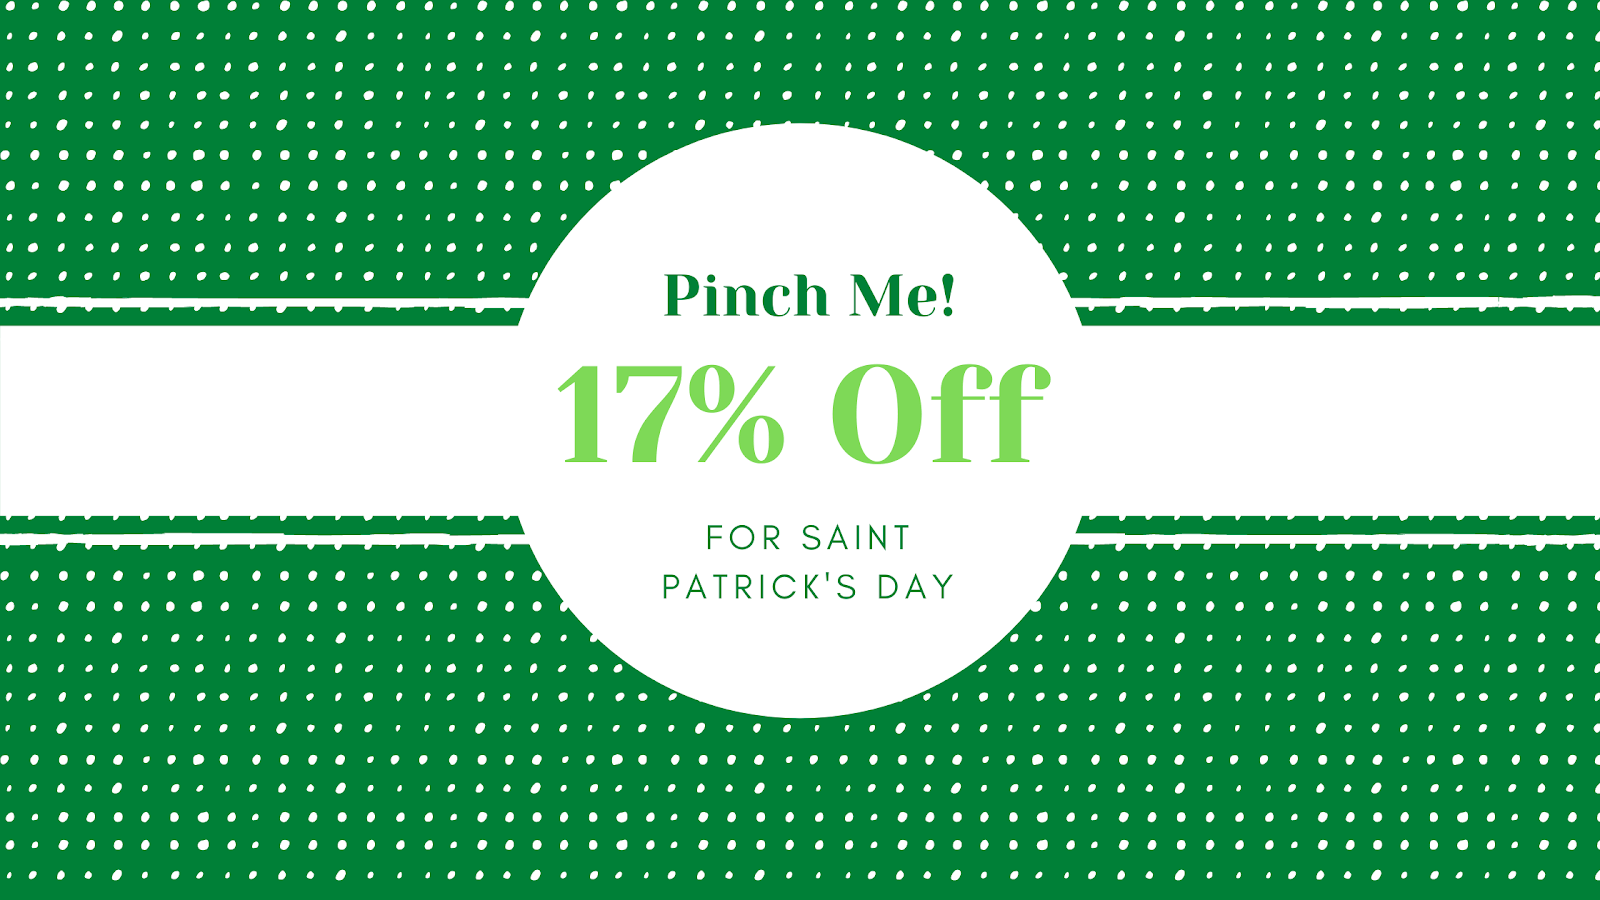 Example of a St. Patrick's Day sale.